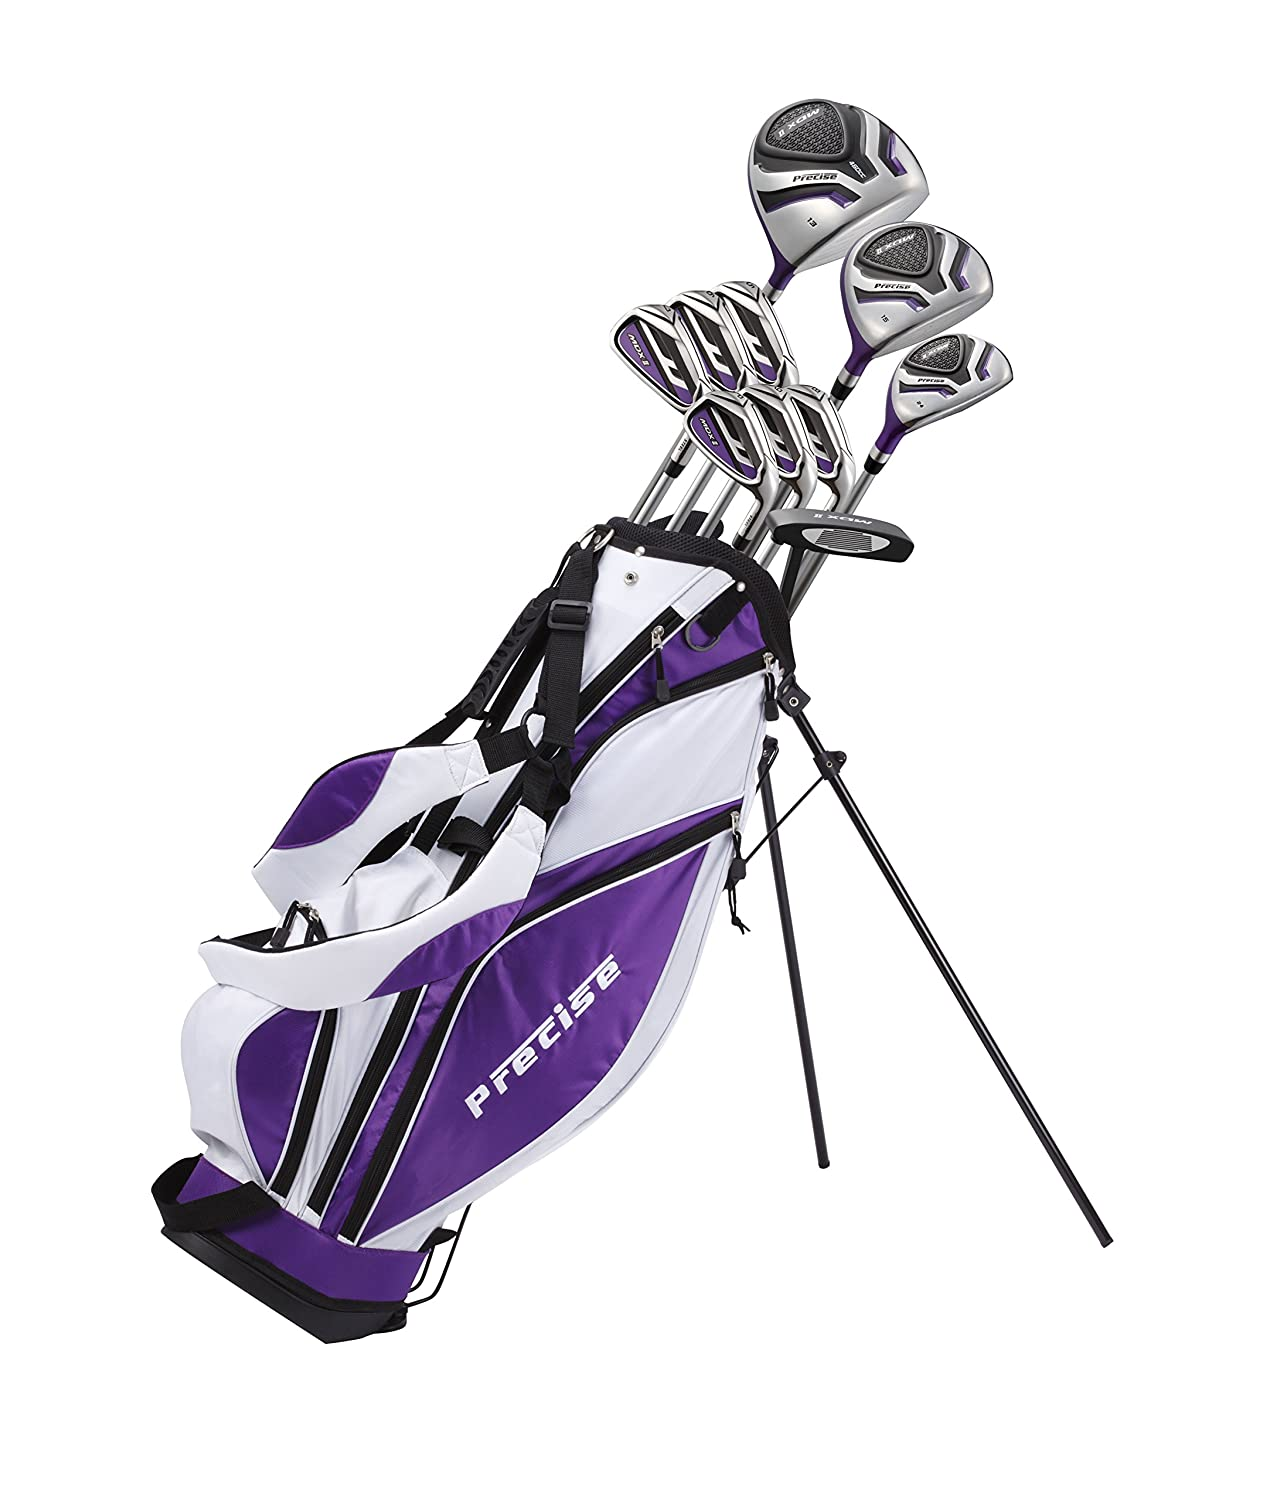 Precise Premium Ladies Womens Complete Golf Clubs Set Includes Driver, Fairway, Hybrid, SS 5-PW Irons, Putter, Stand Bag, 3 H/Cs